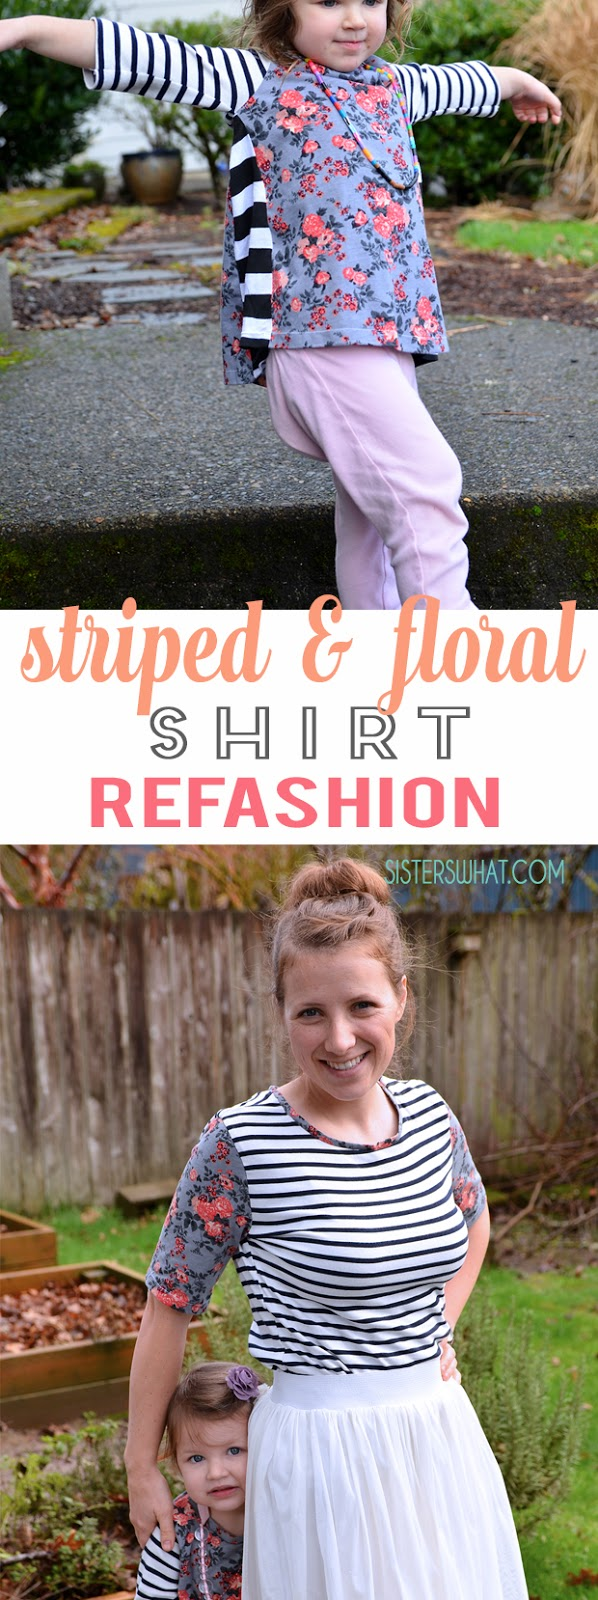 such an easy shirt refashion! simply cut off an old shirt sleeves and add new sleeves with a different pattern fabric!!